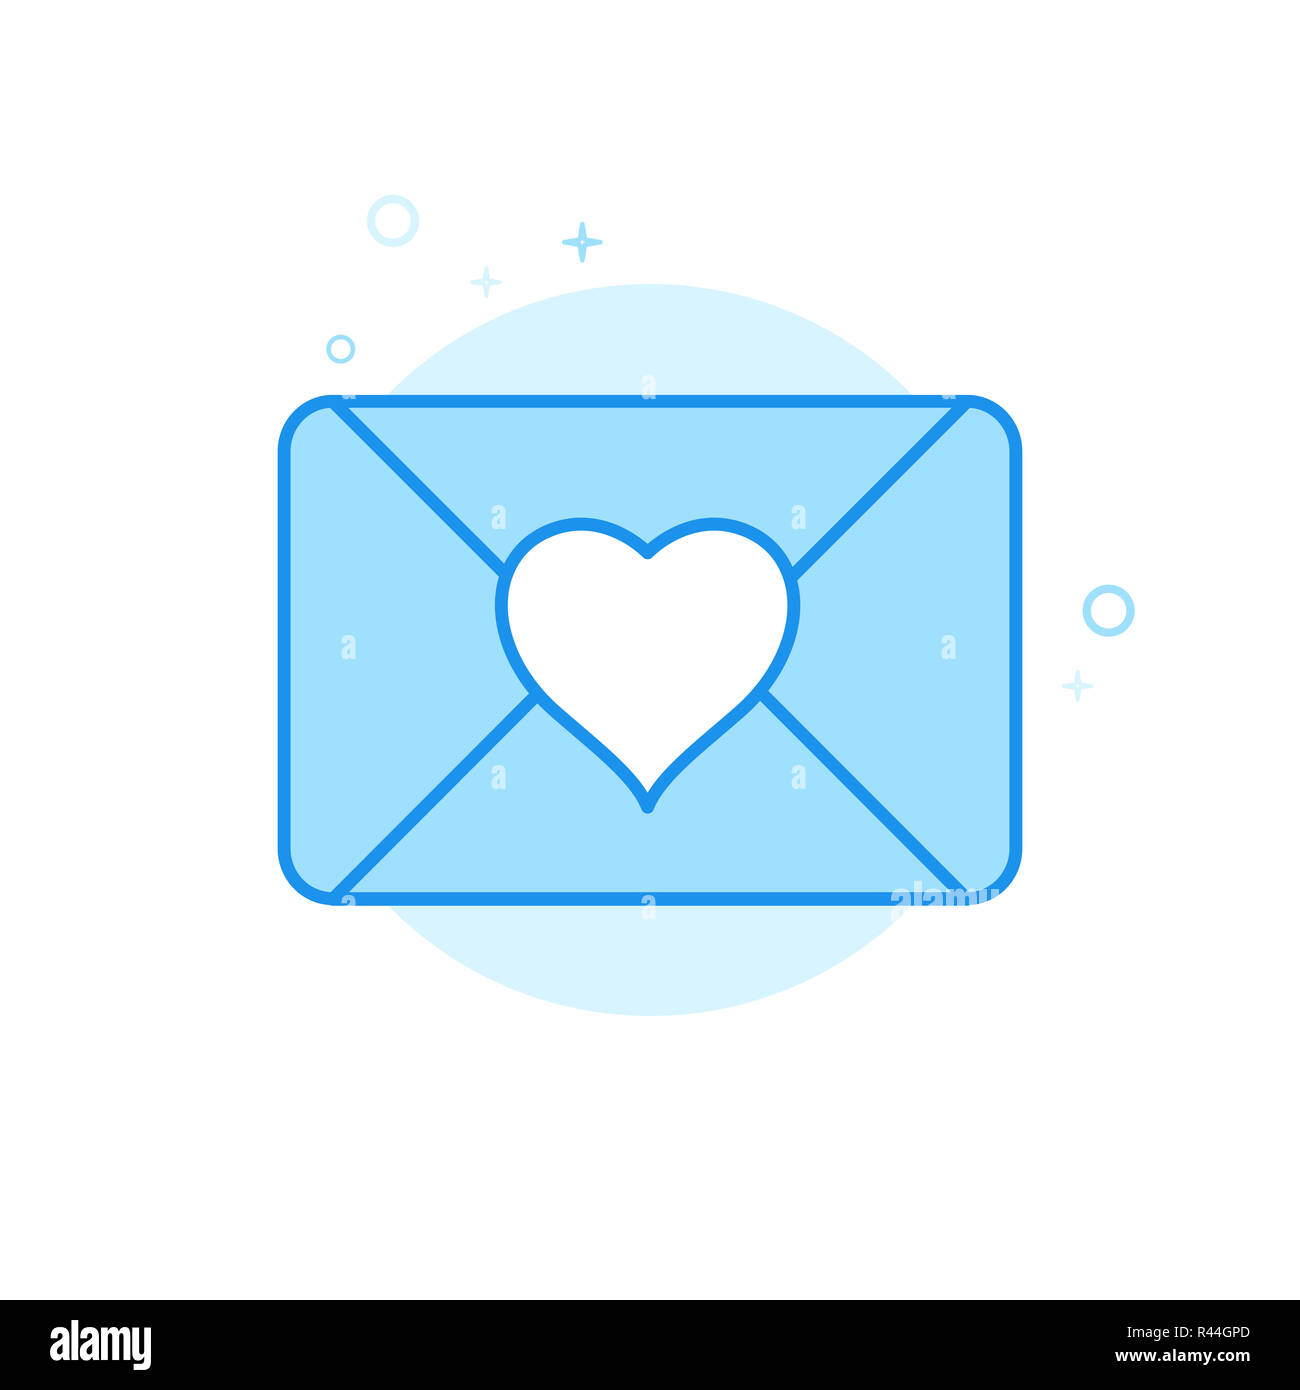 Love Letter Flat Icon Wedding Invitation Symbol Pictogram Sign